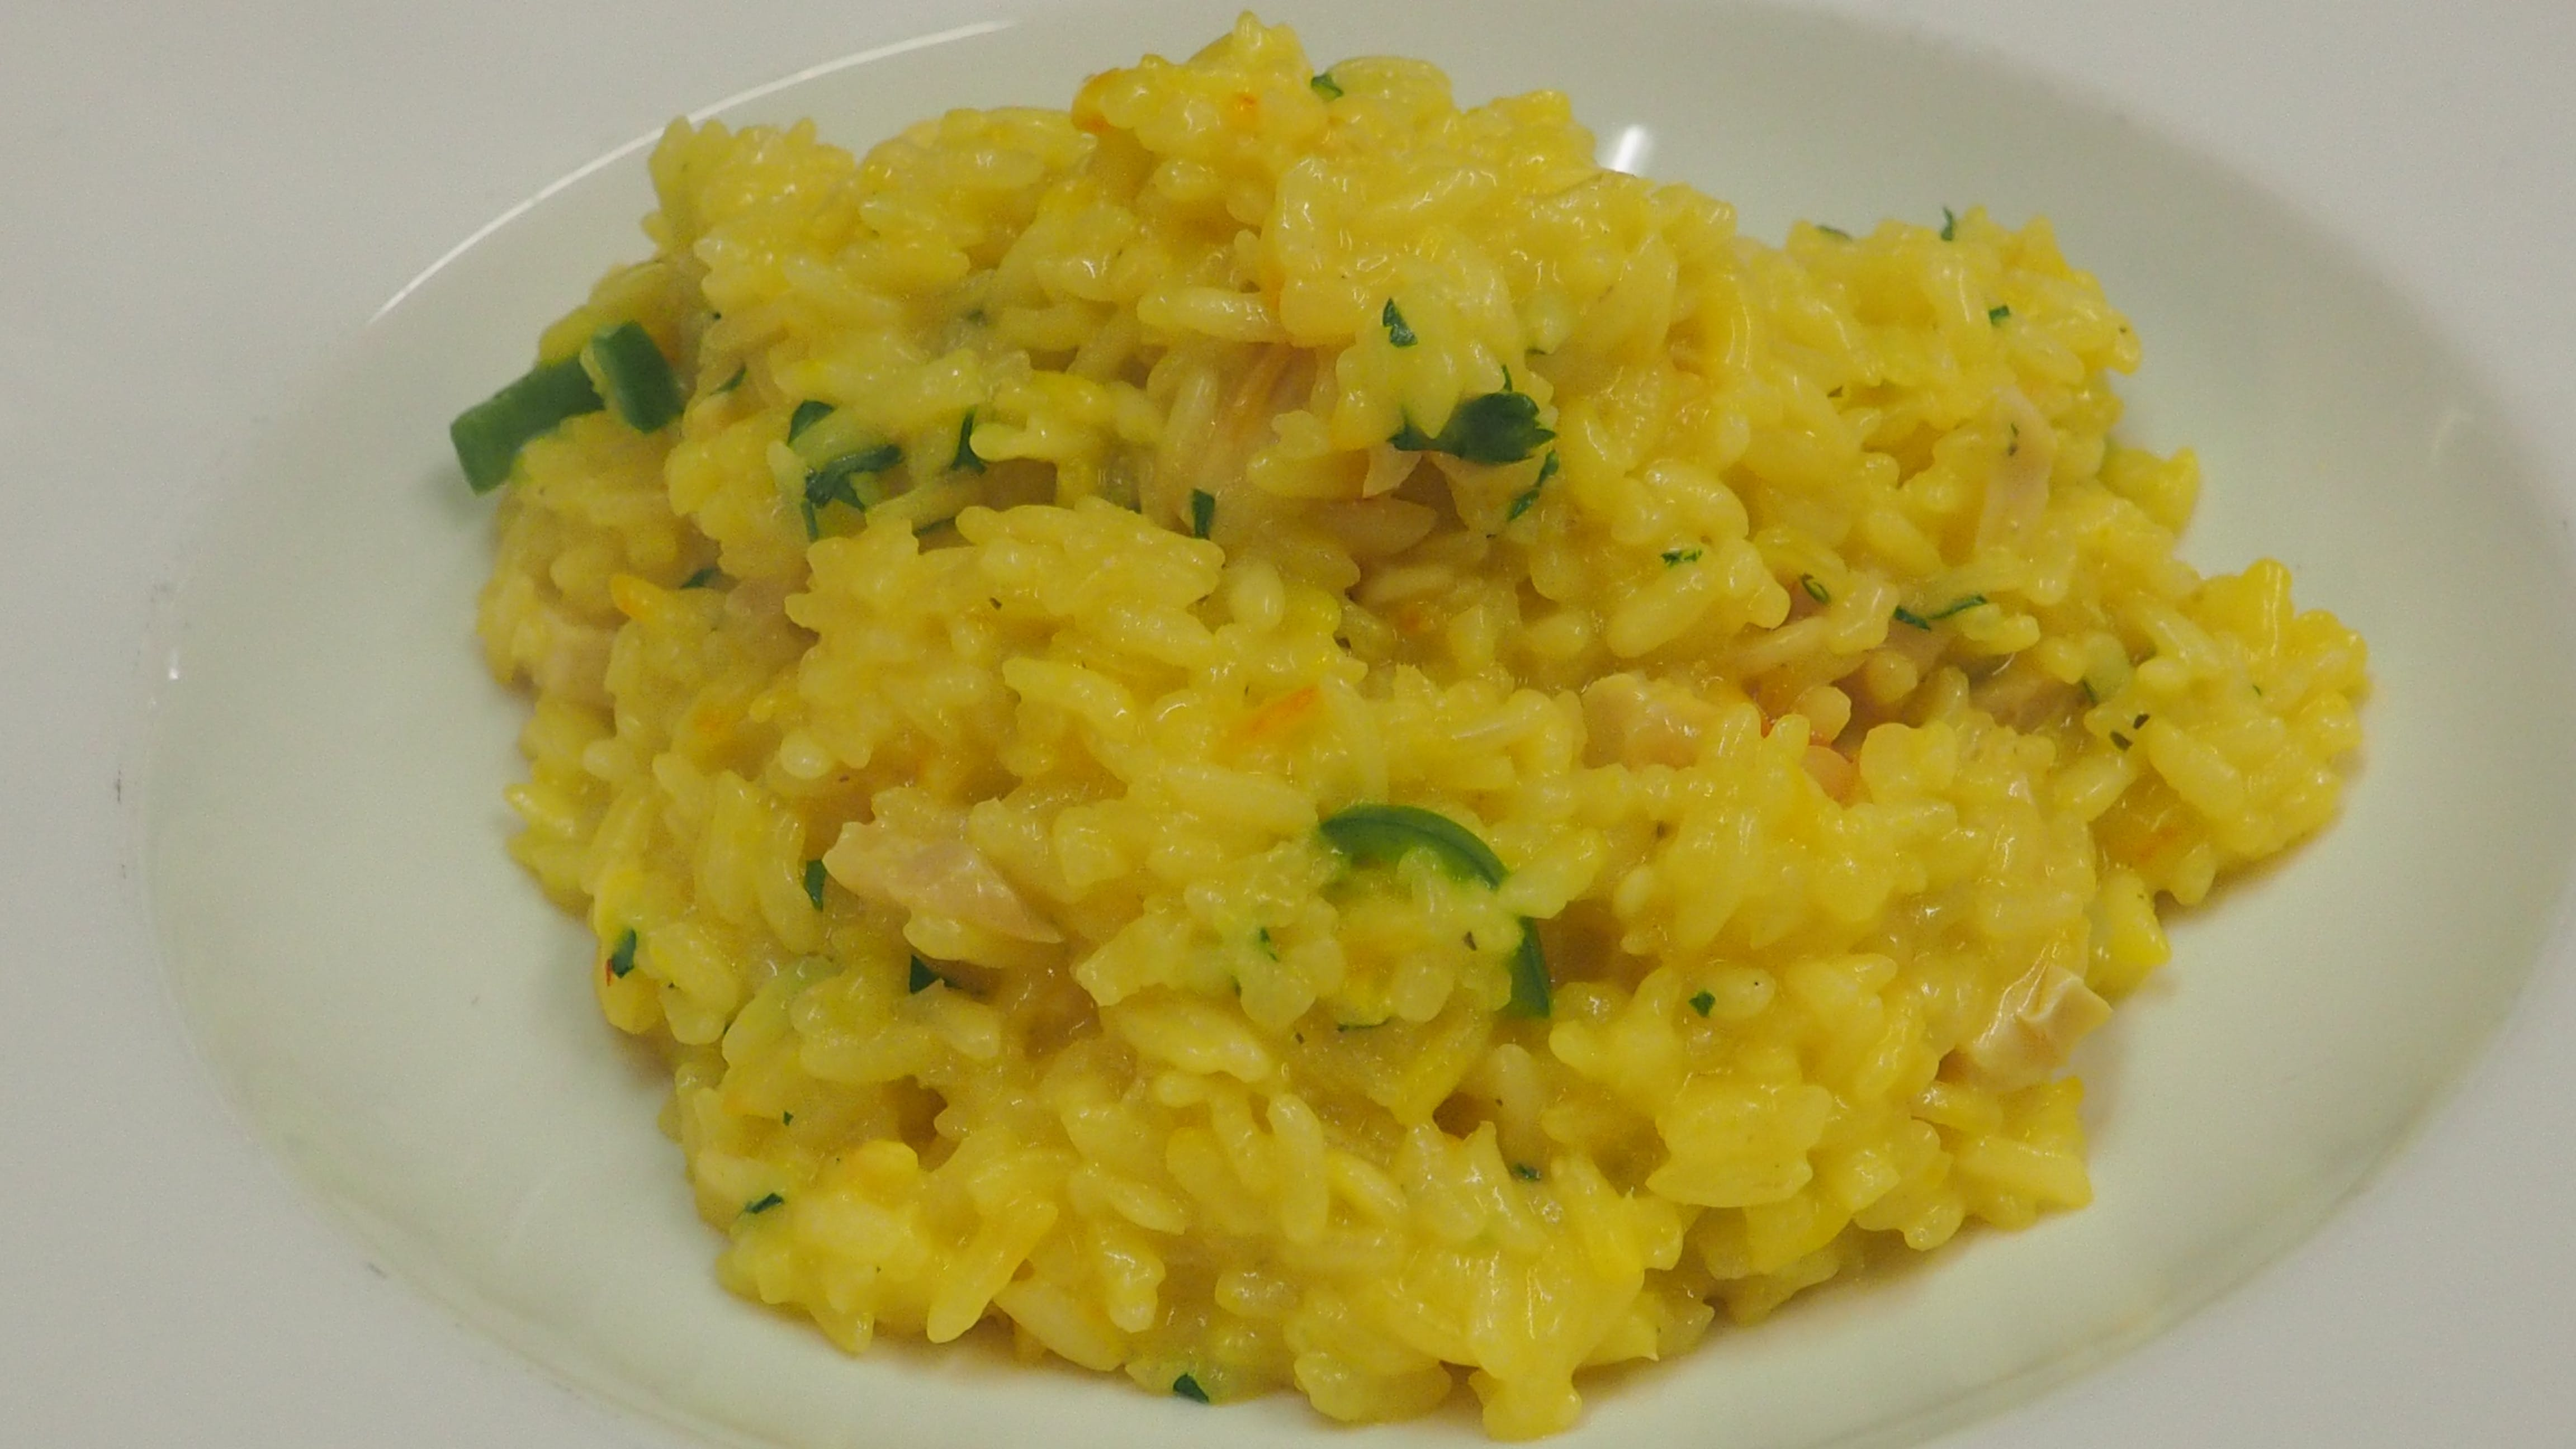 Free stock photo of Risotto